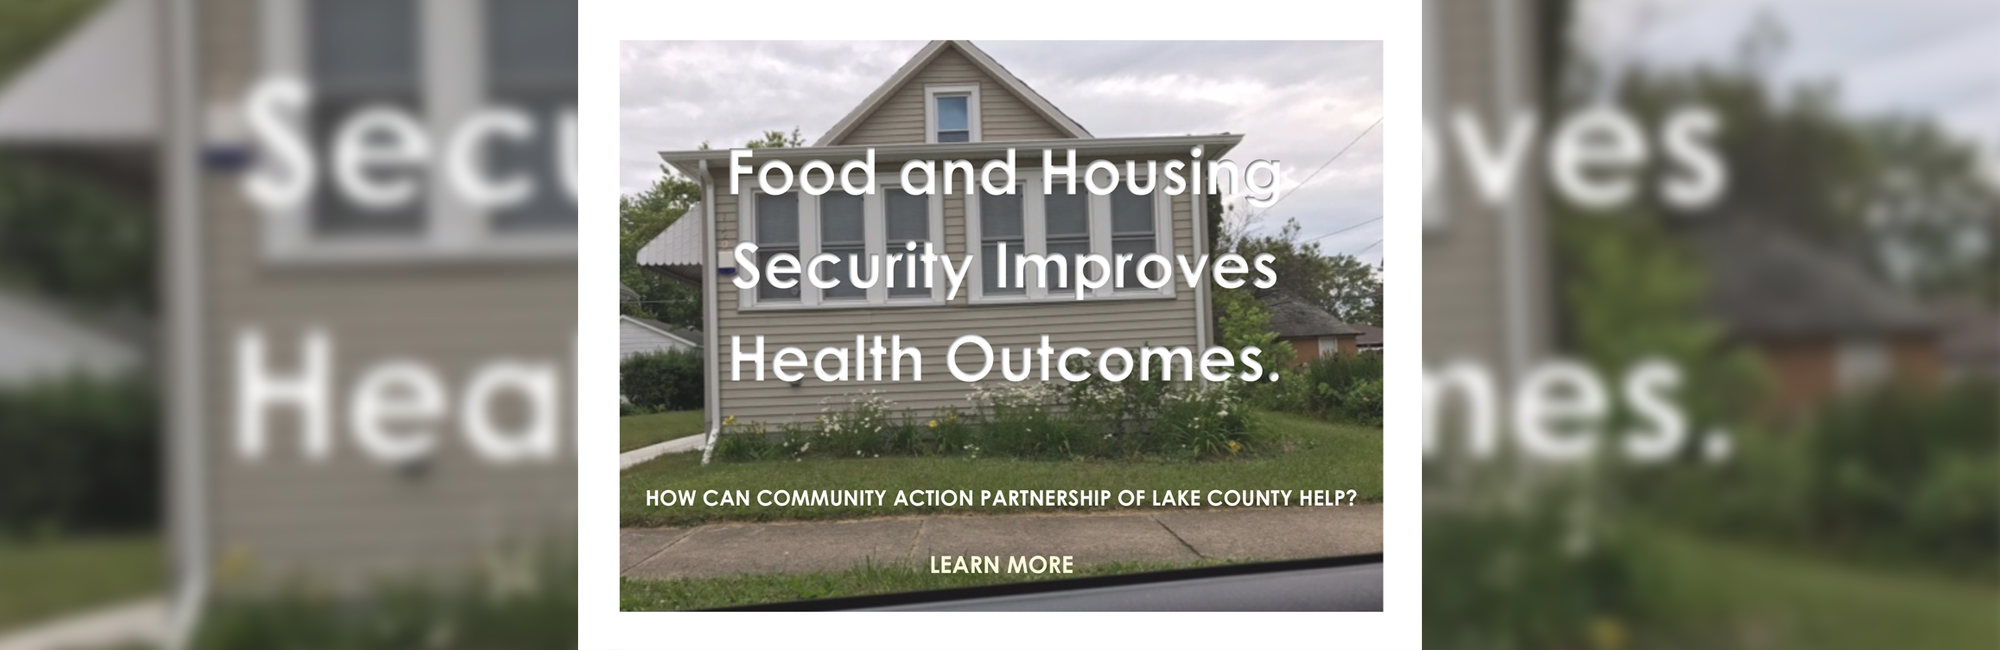 Food and Housing Security Improves Health Outcomes